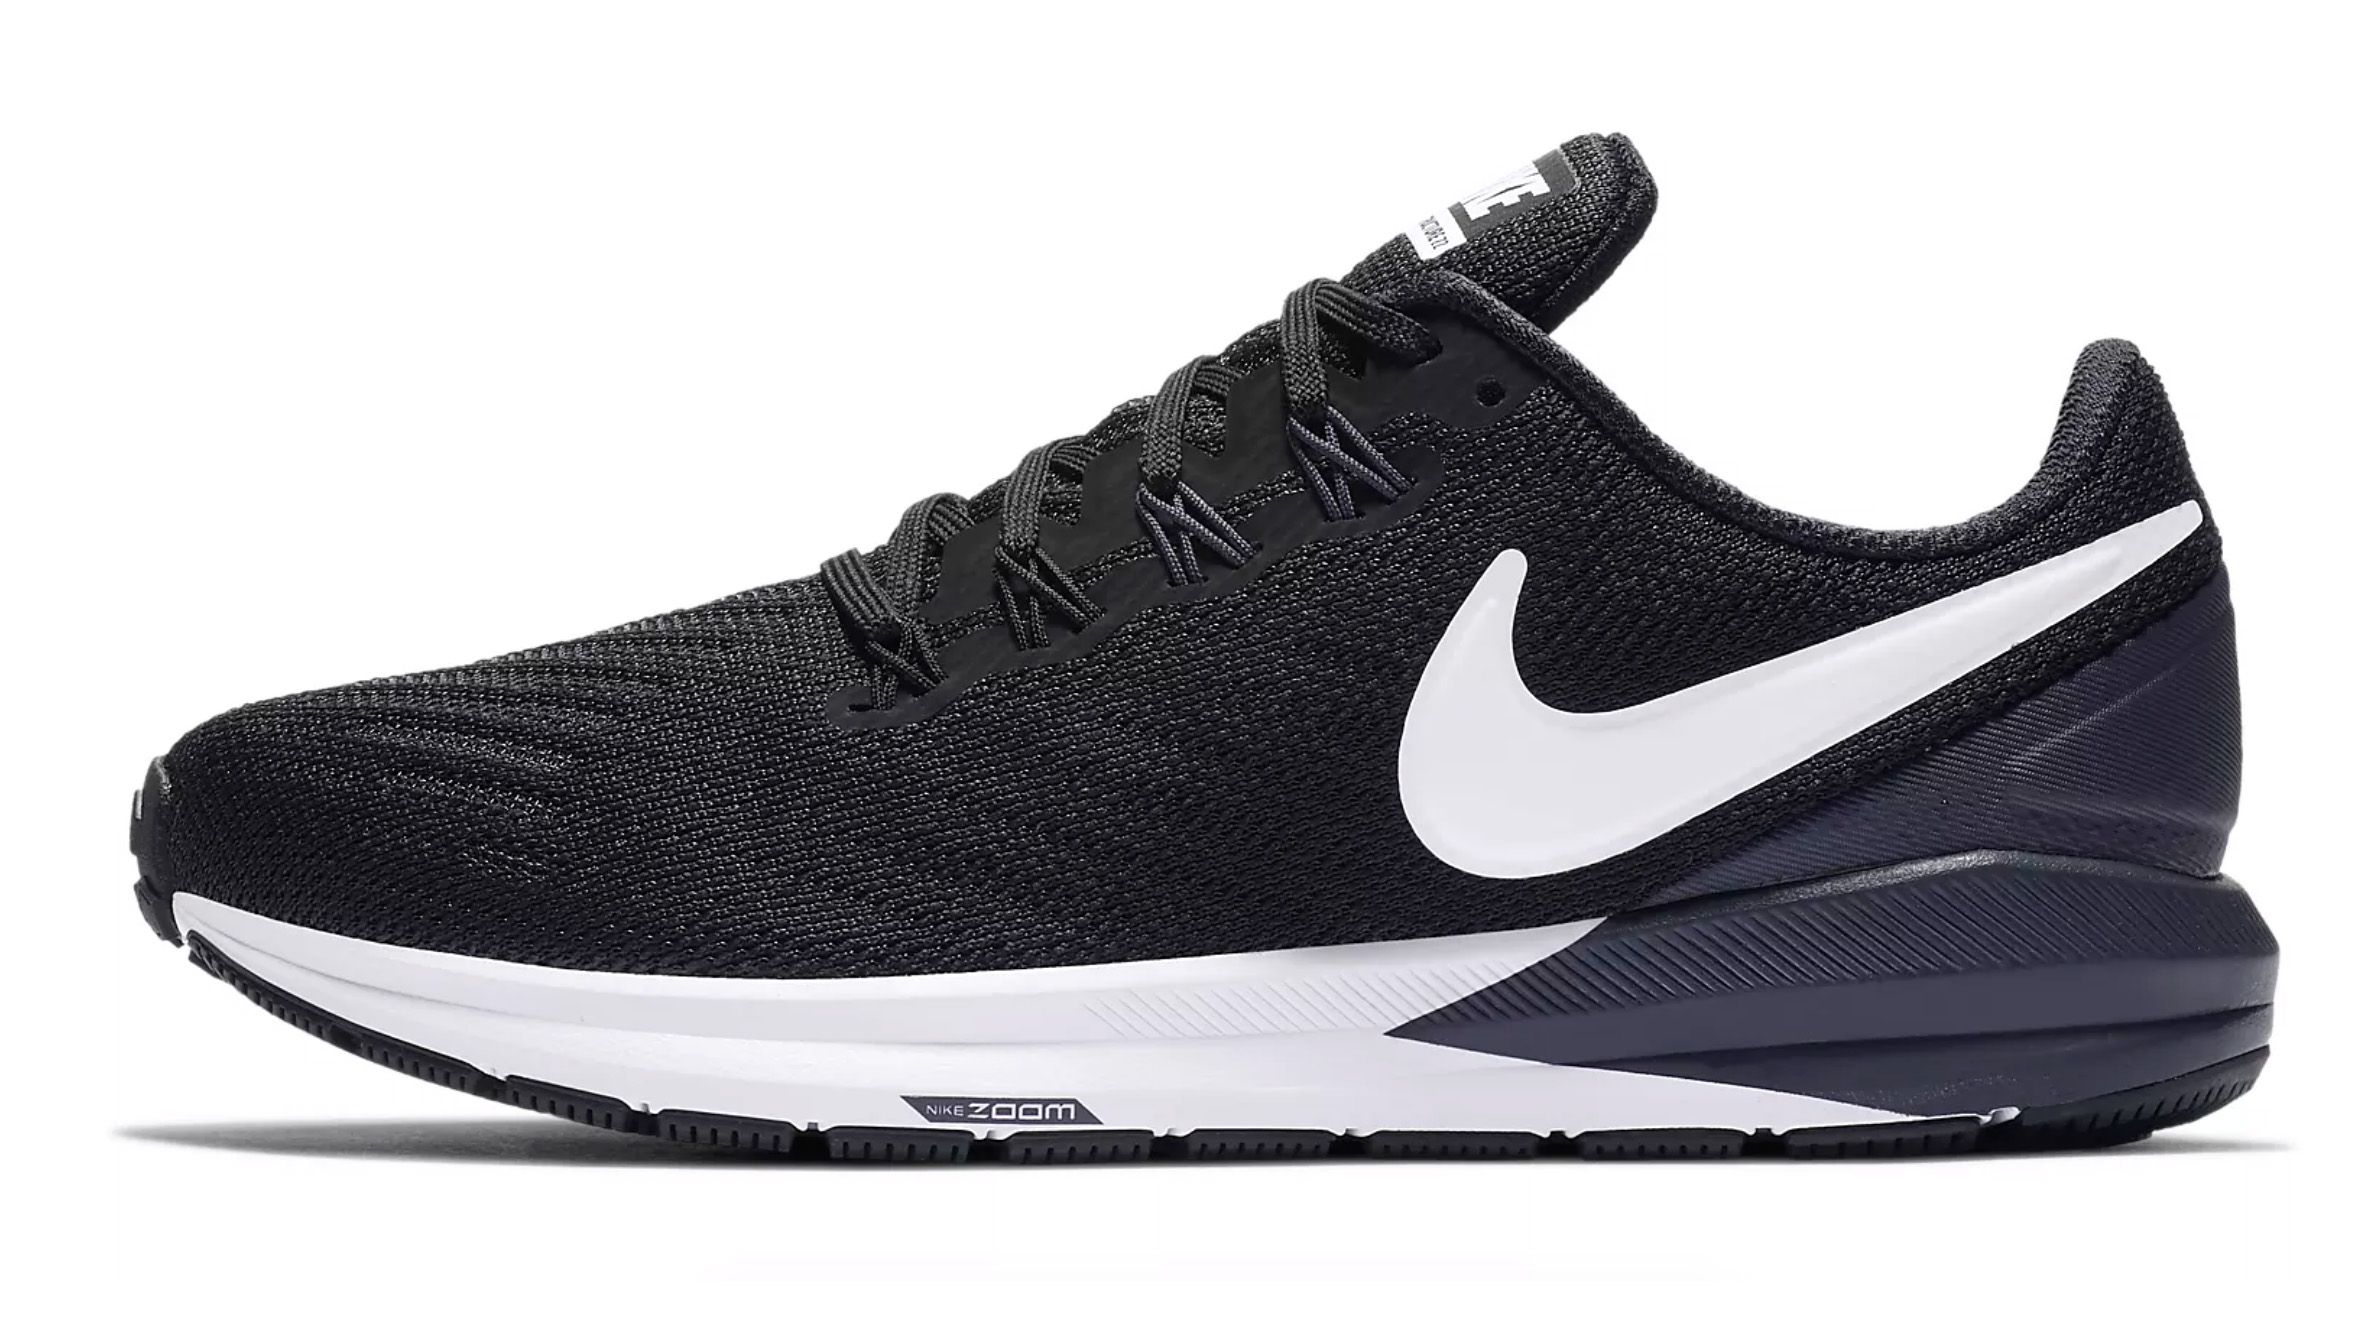 19 Best Nike shoes images | Nike shoes, Nike, Running shoes